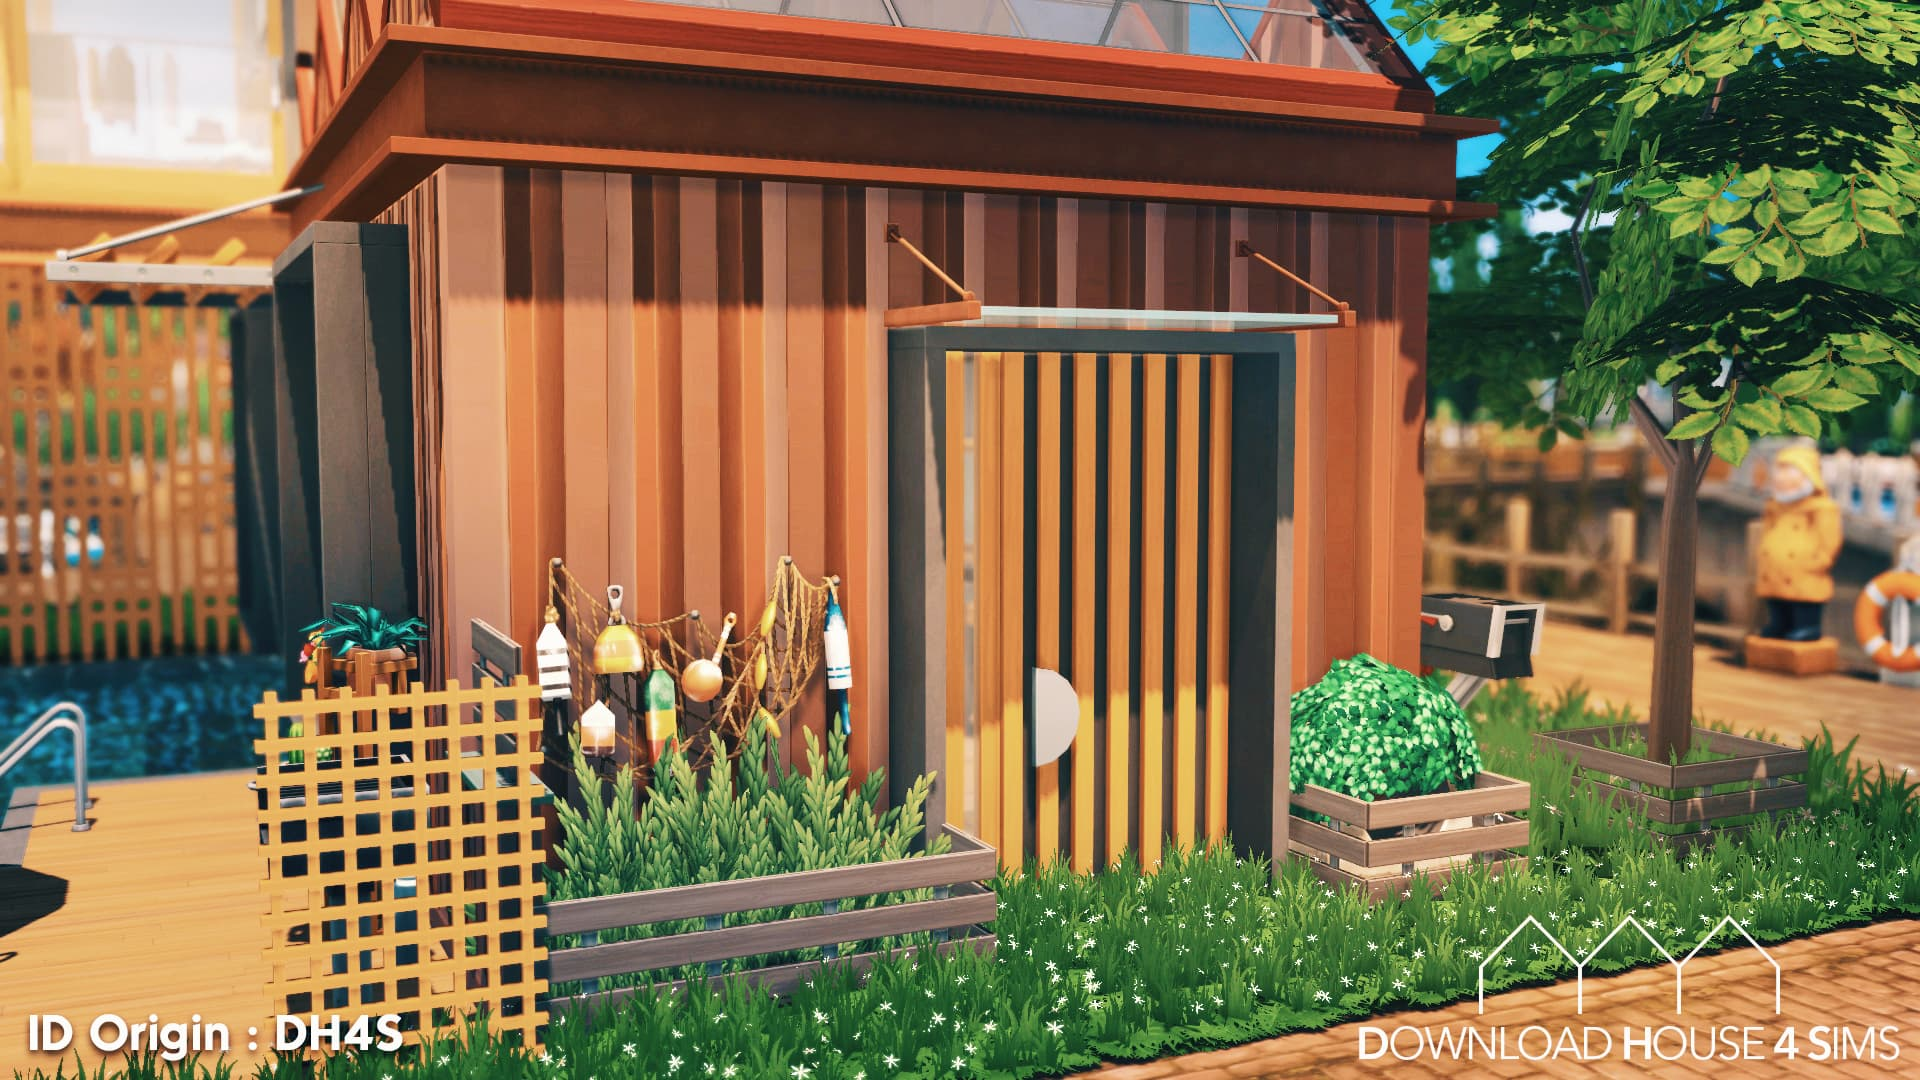 DH4S-Download-house-for-sims-dock-container-eco-house-4